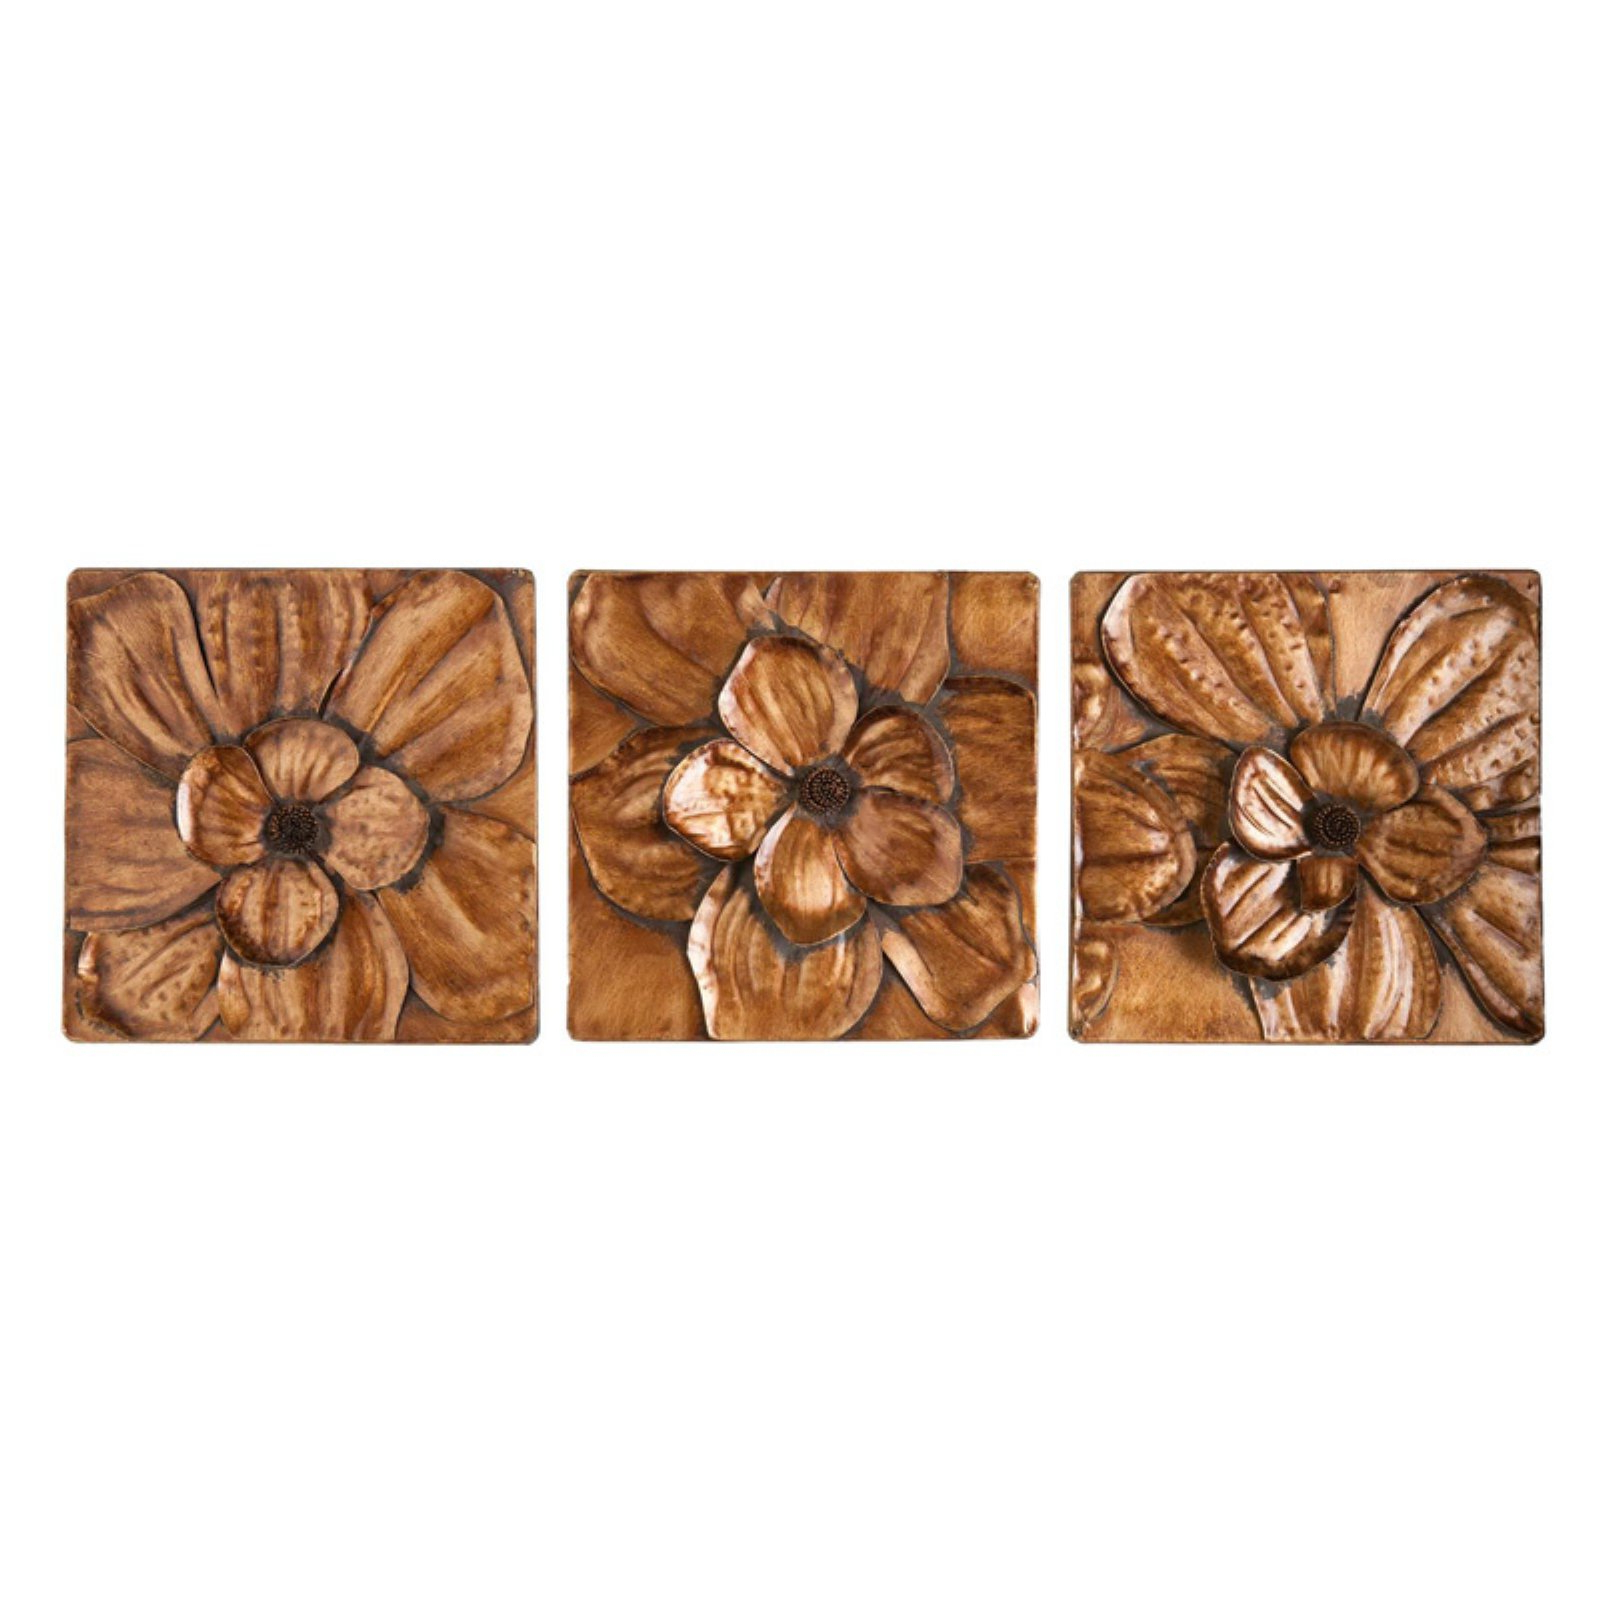 Well Liked 3 Piece Magnolia Brown Panel Wall Decor Sets Within Southern Enterprises Magnolia 3 Piece Wall Panel Set – Walmart (View 3 of 20)